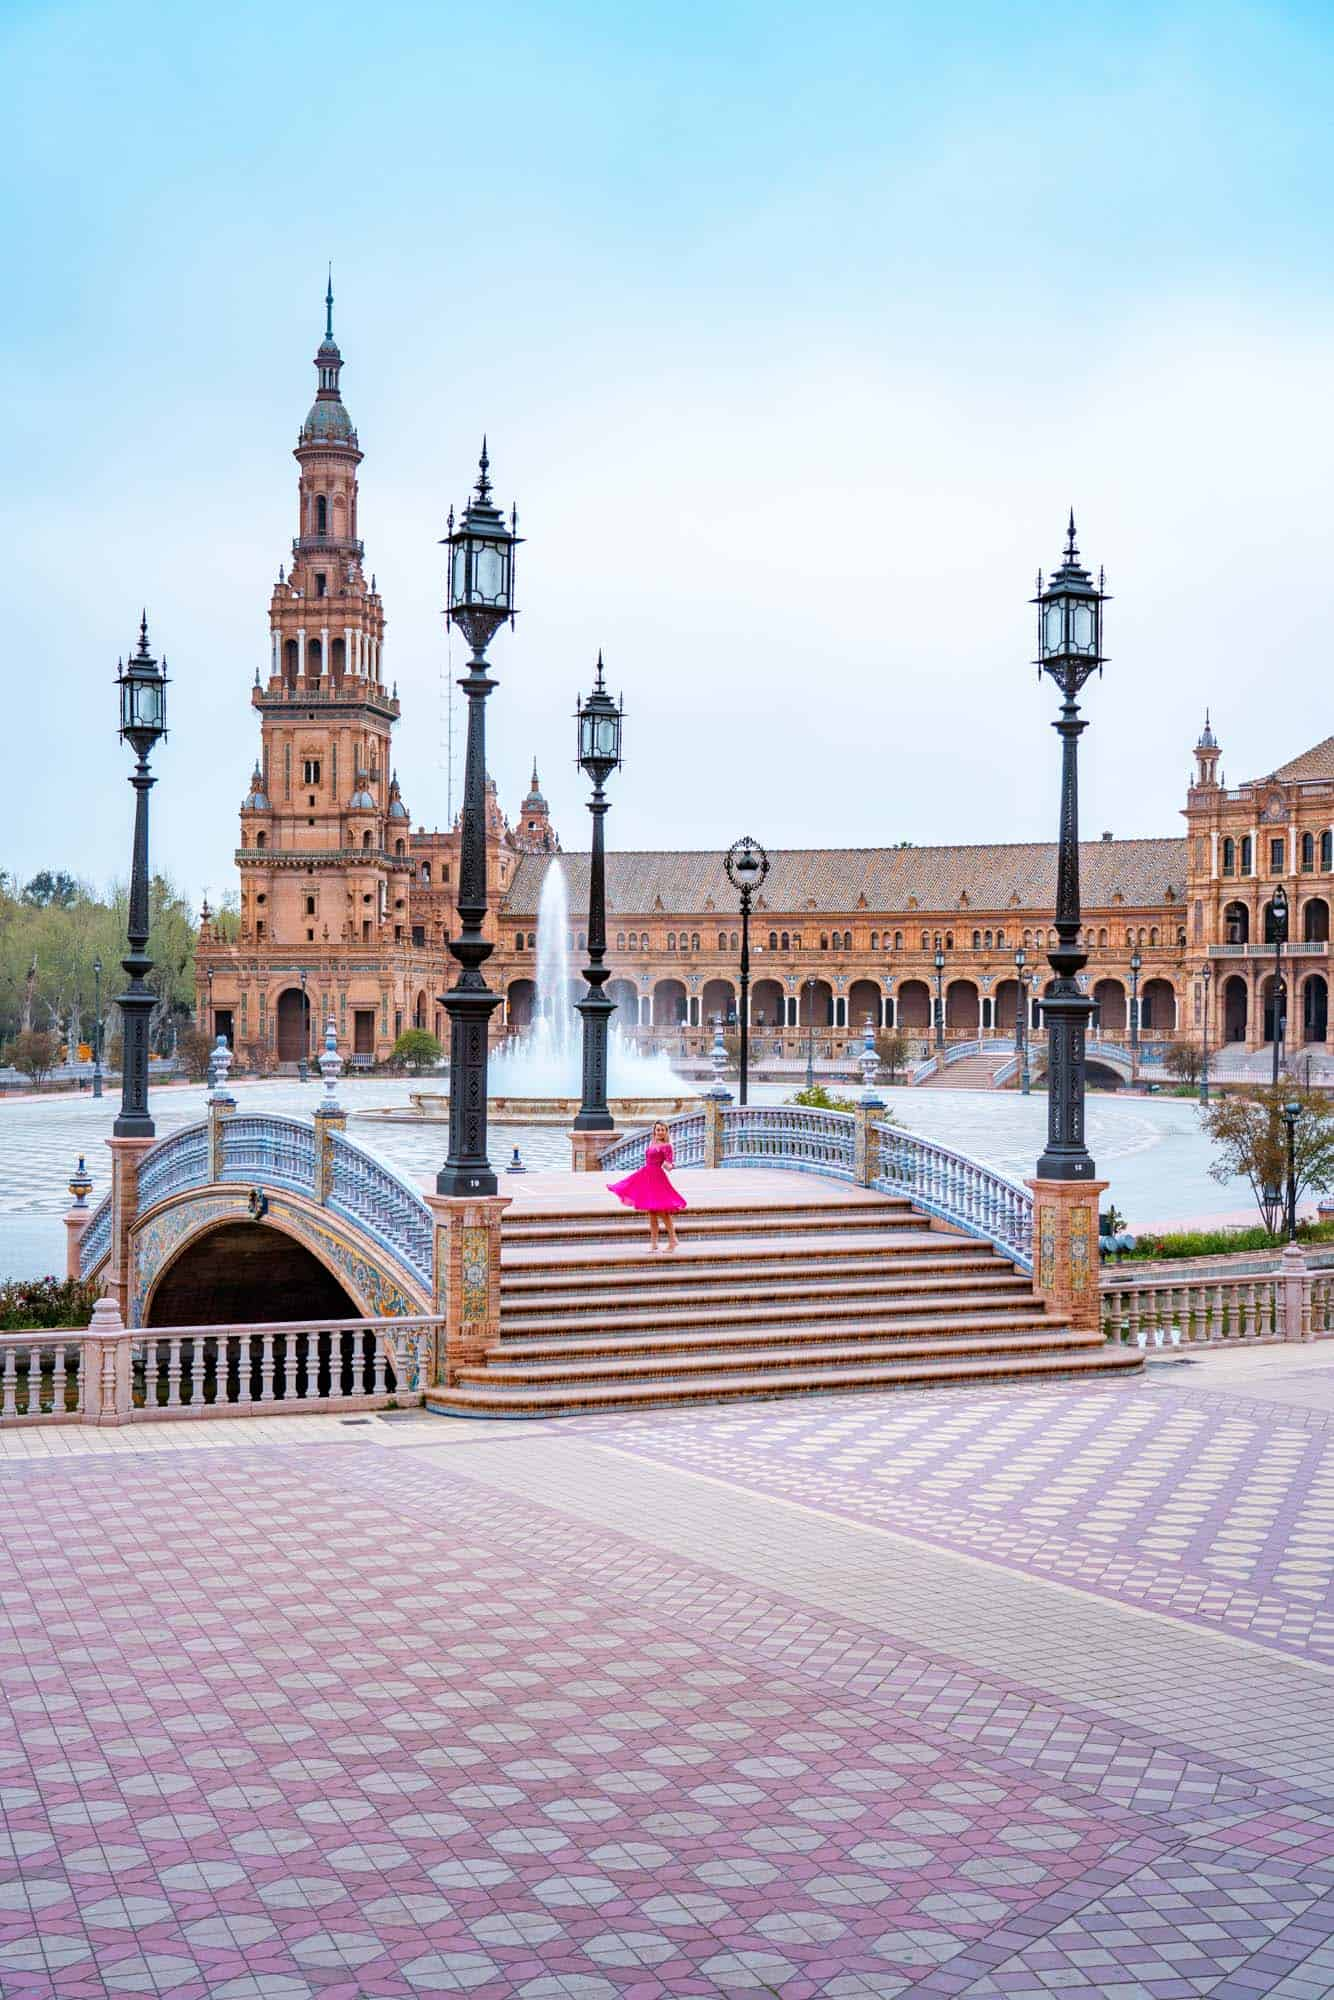 One of the most instagrammable places in Seville - Plaza de España